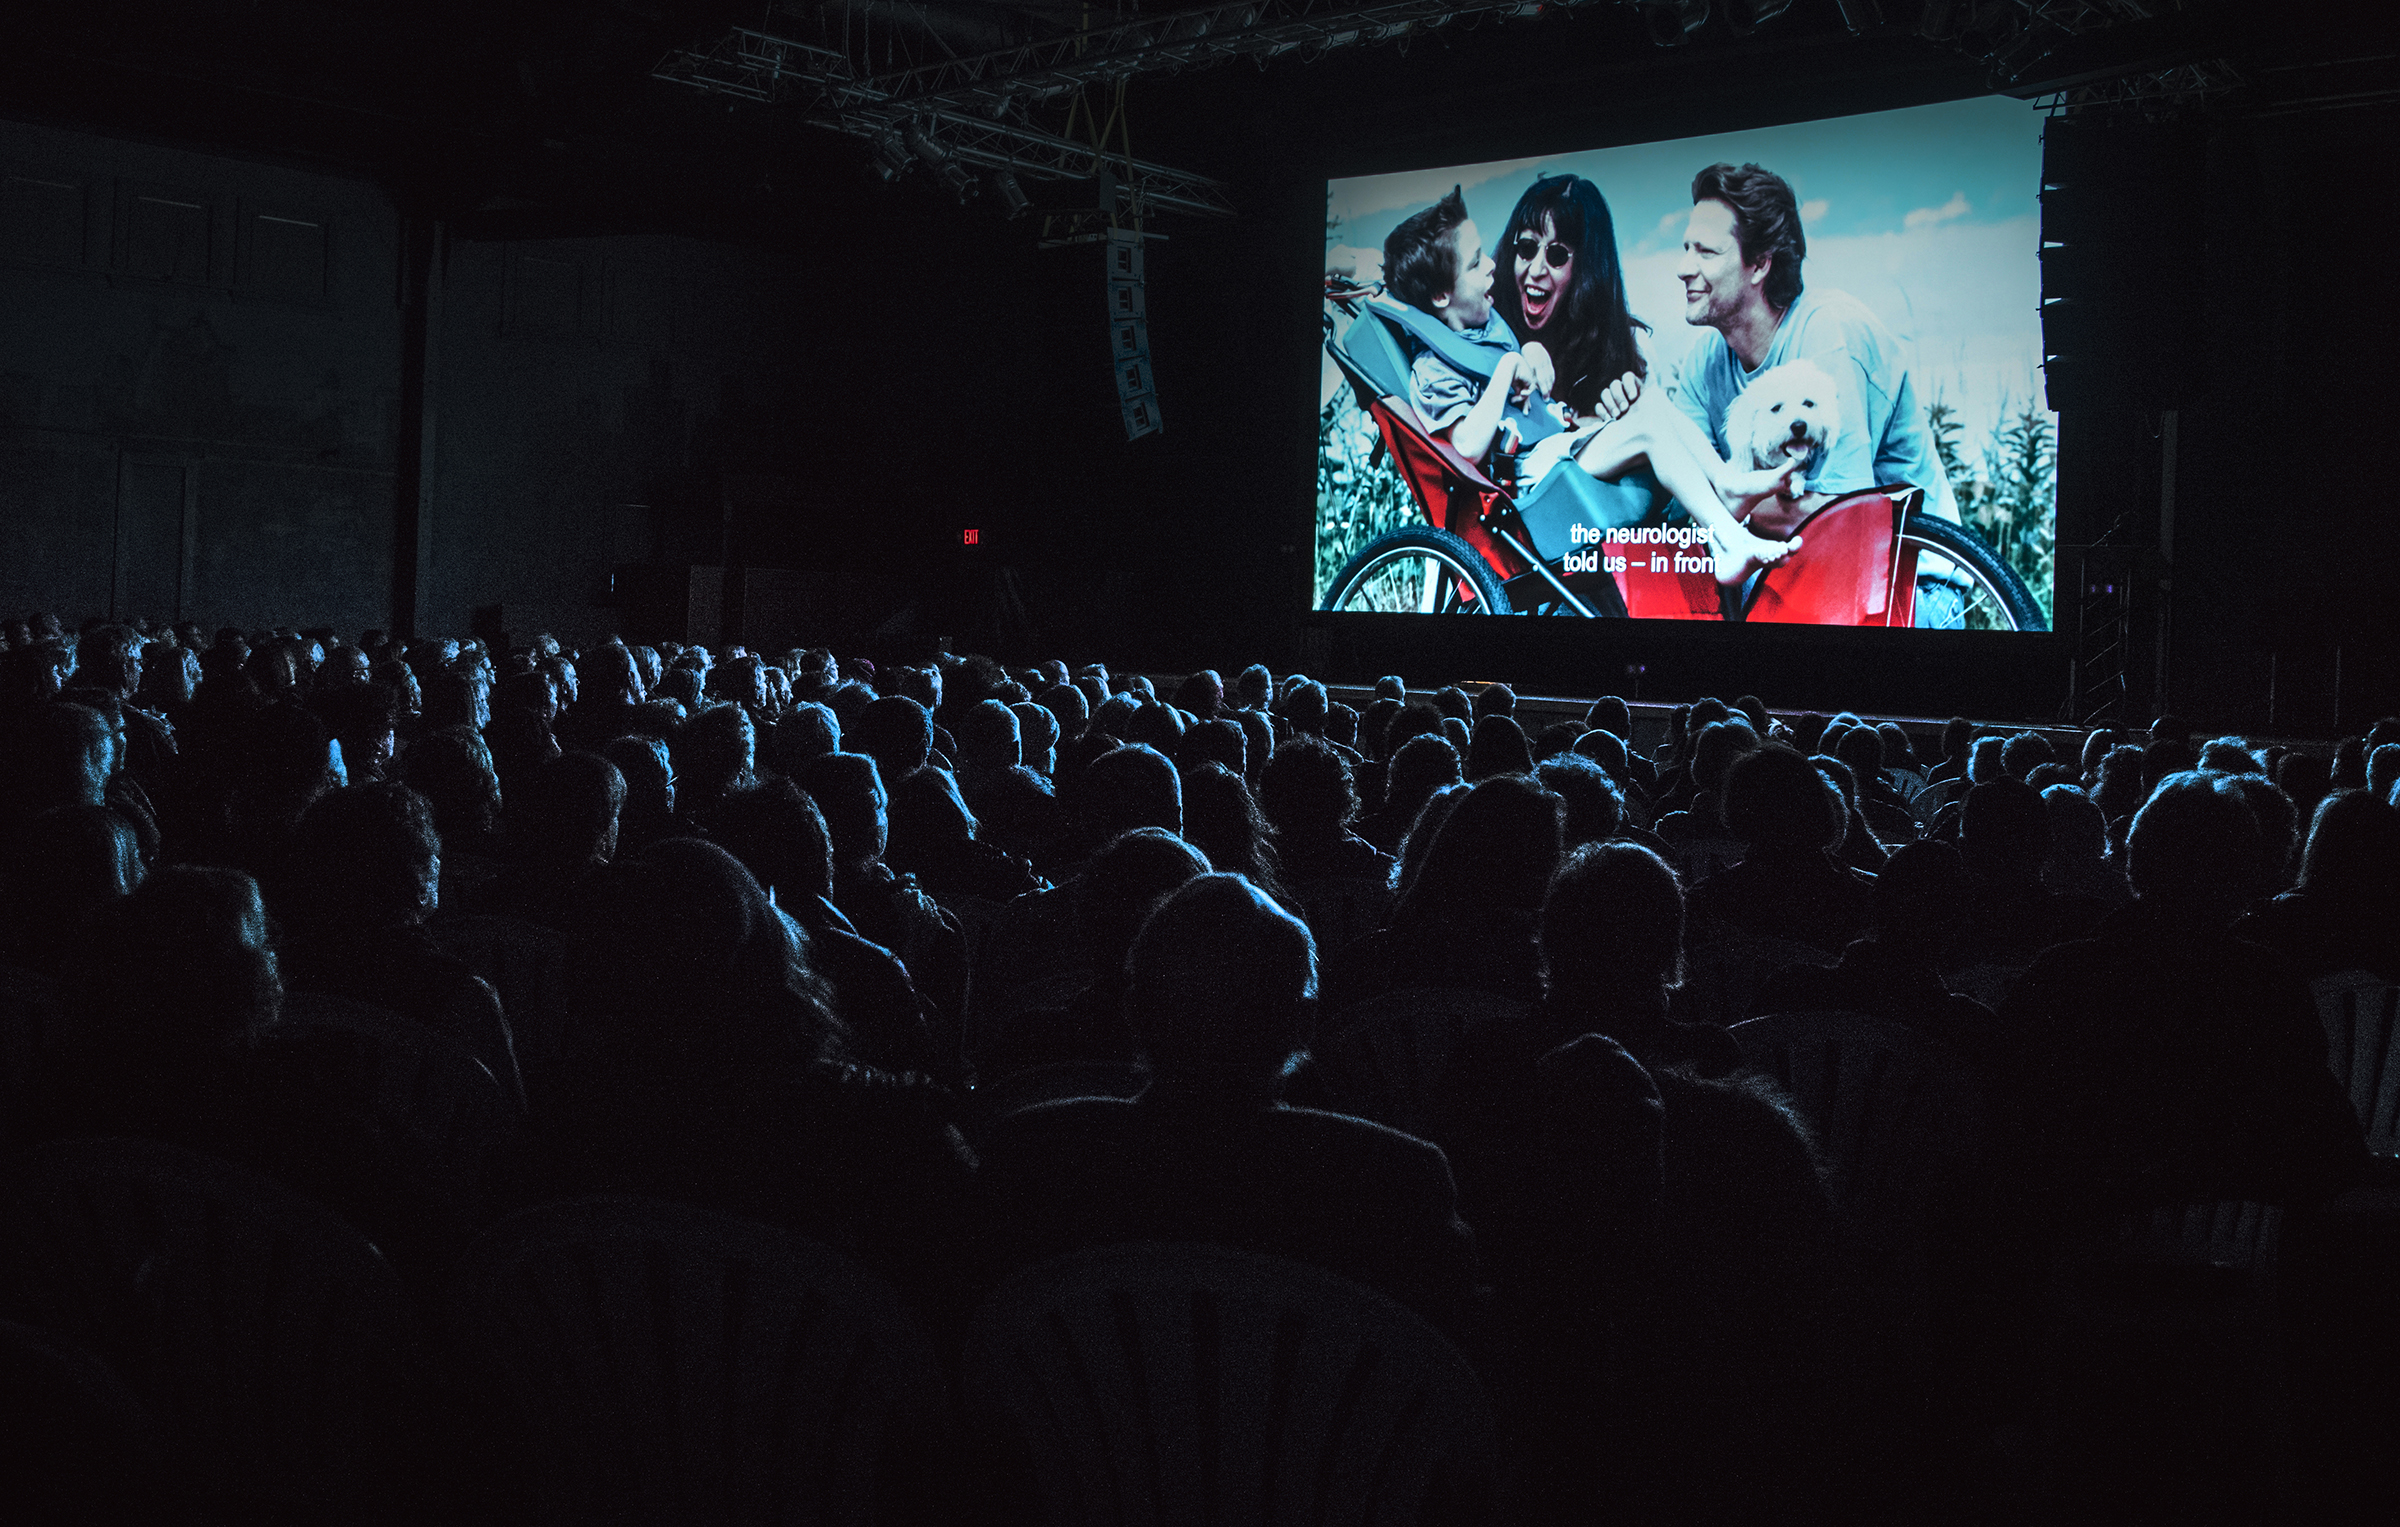 8bedf8b4d0e2 Most documentary filmmakers dream of having our films projected on big